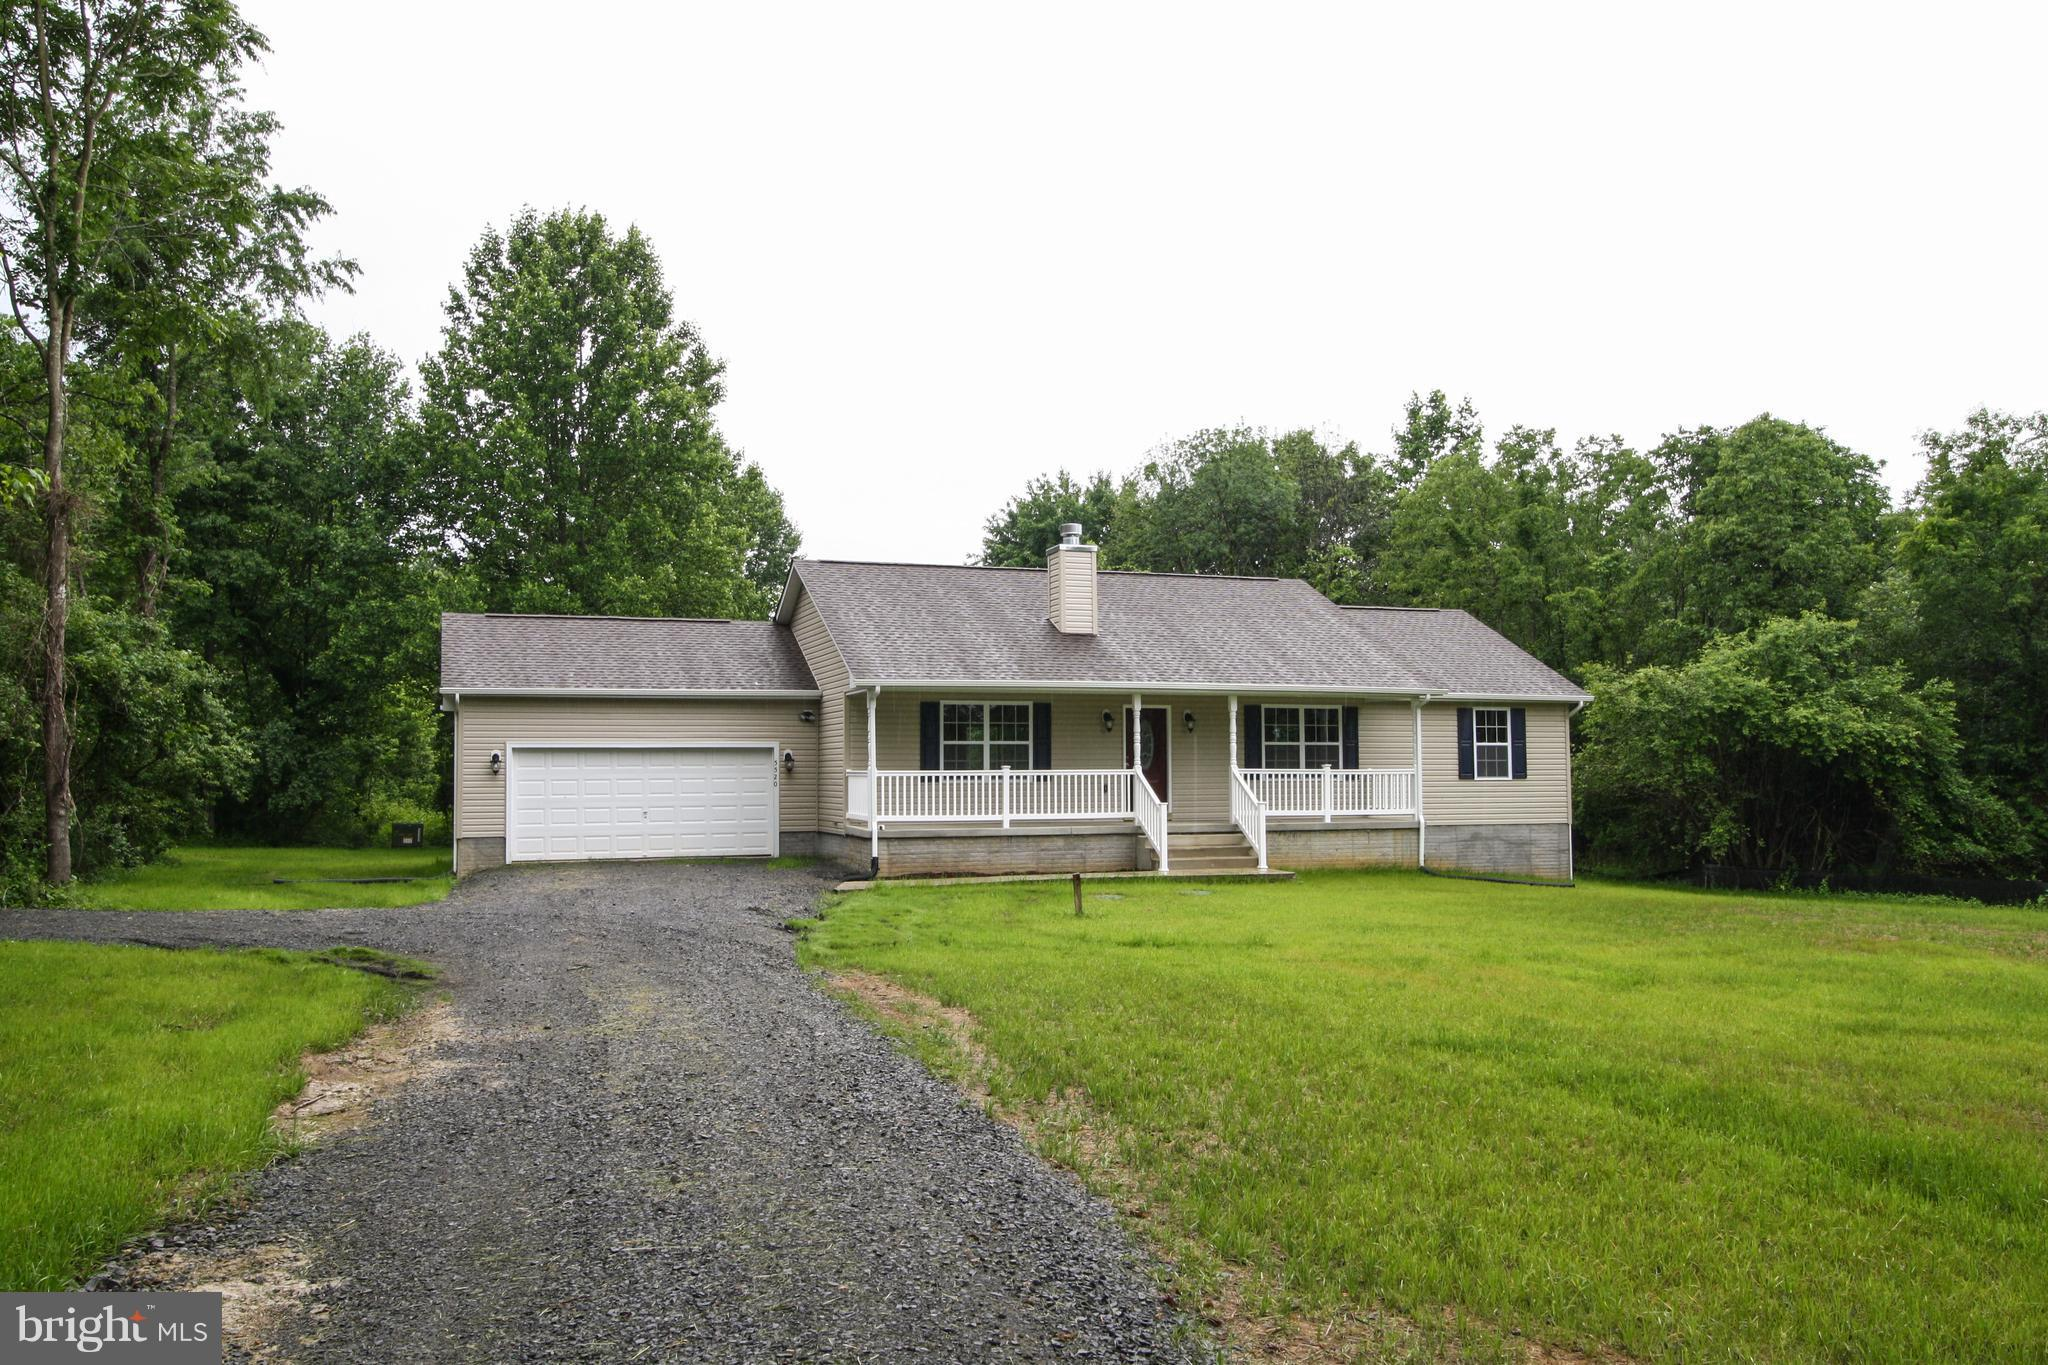 LUCKY HILL ROAD, REMINGTON, VA 22734